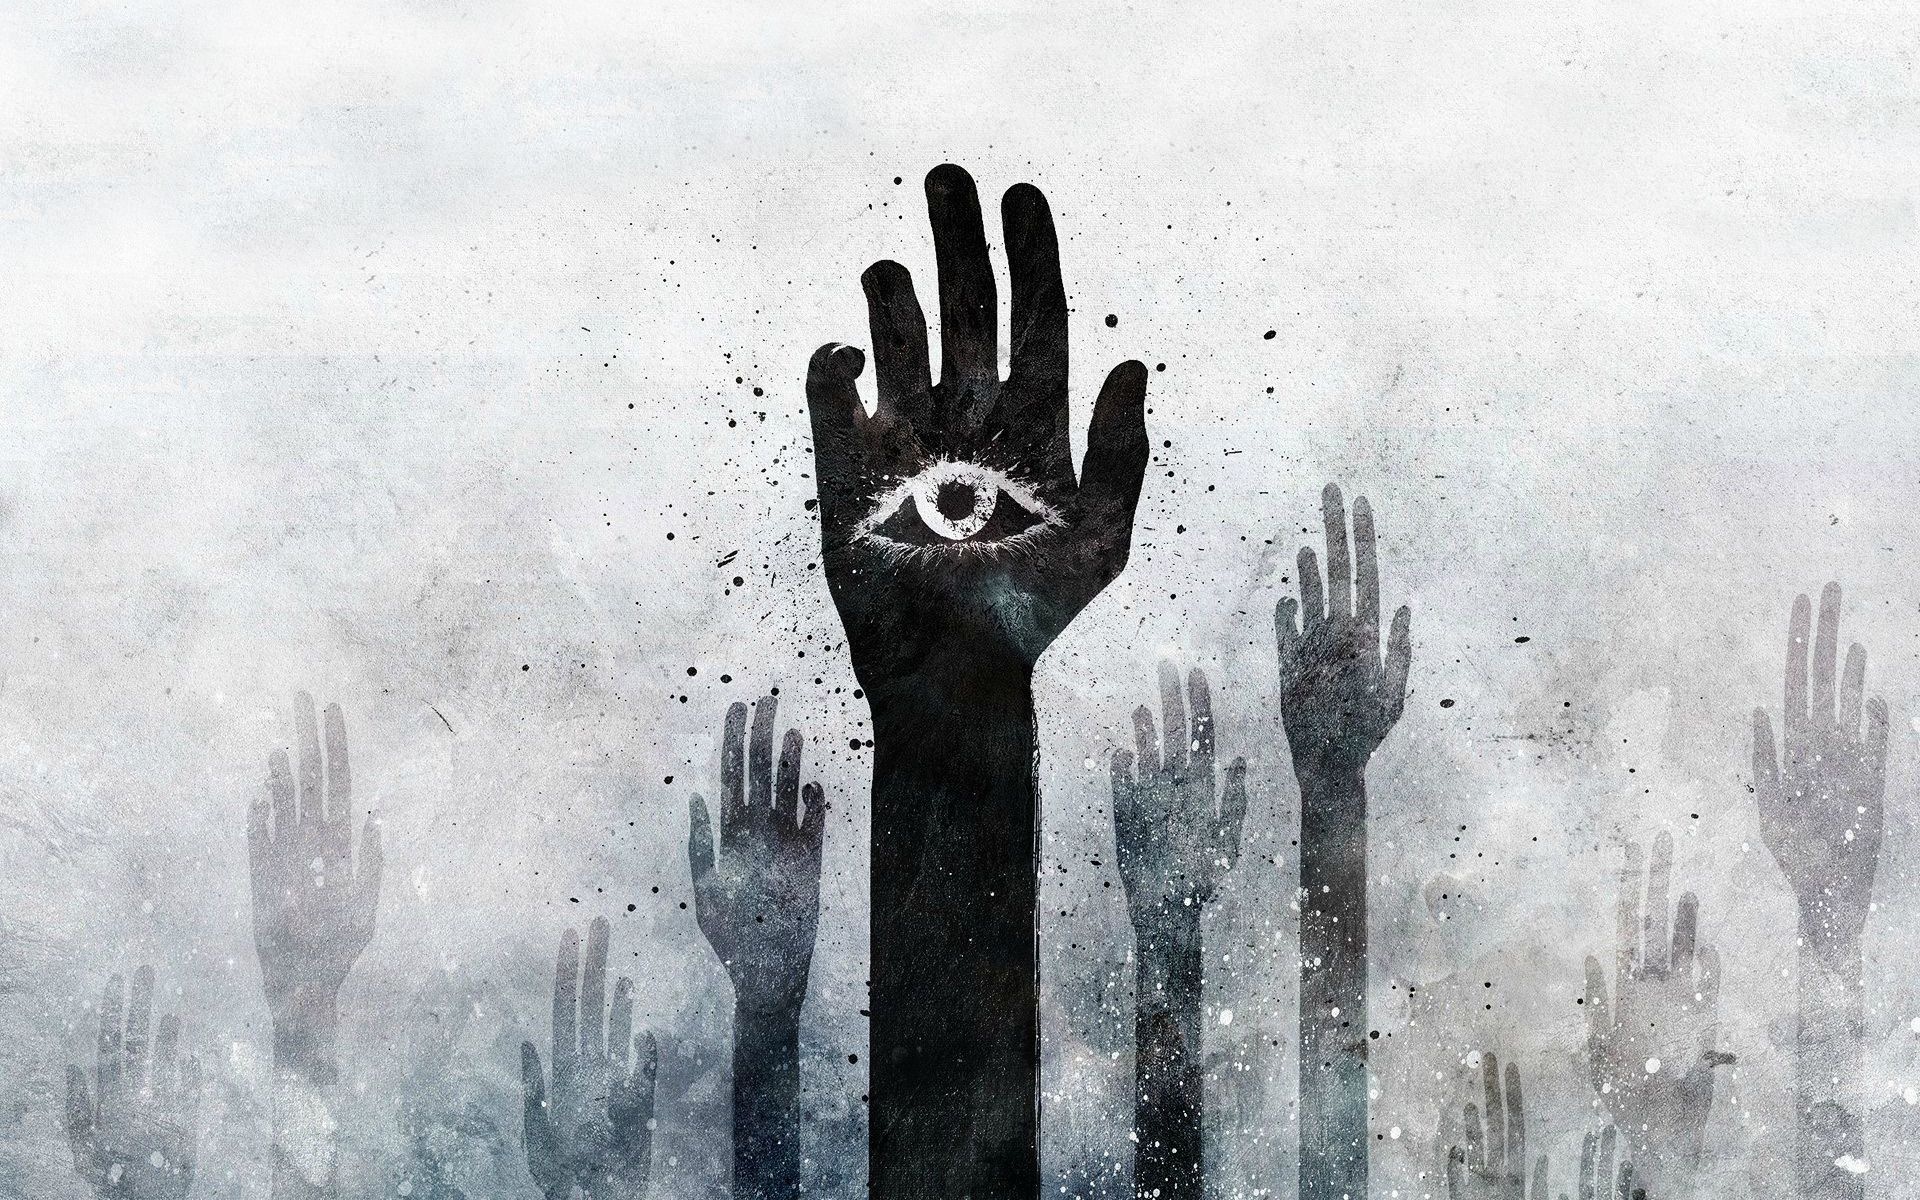 Hands wallpaper   Artistic wallpapers   14581 1920x1200